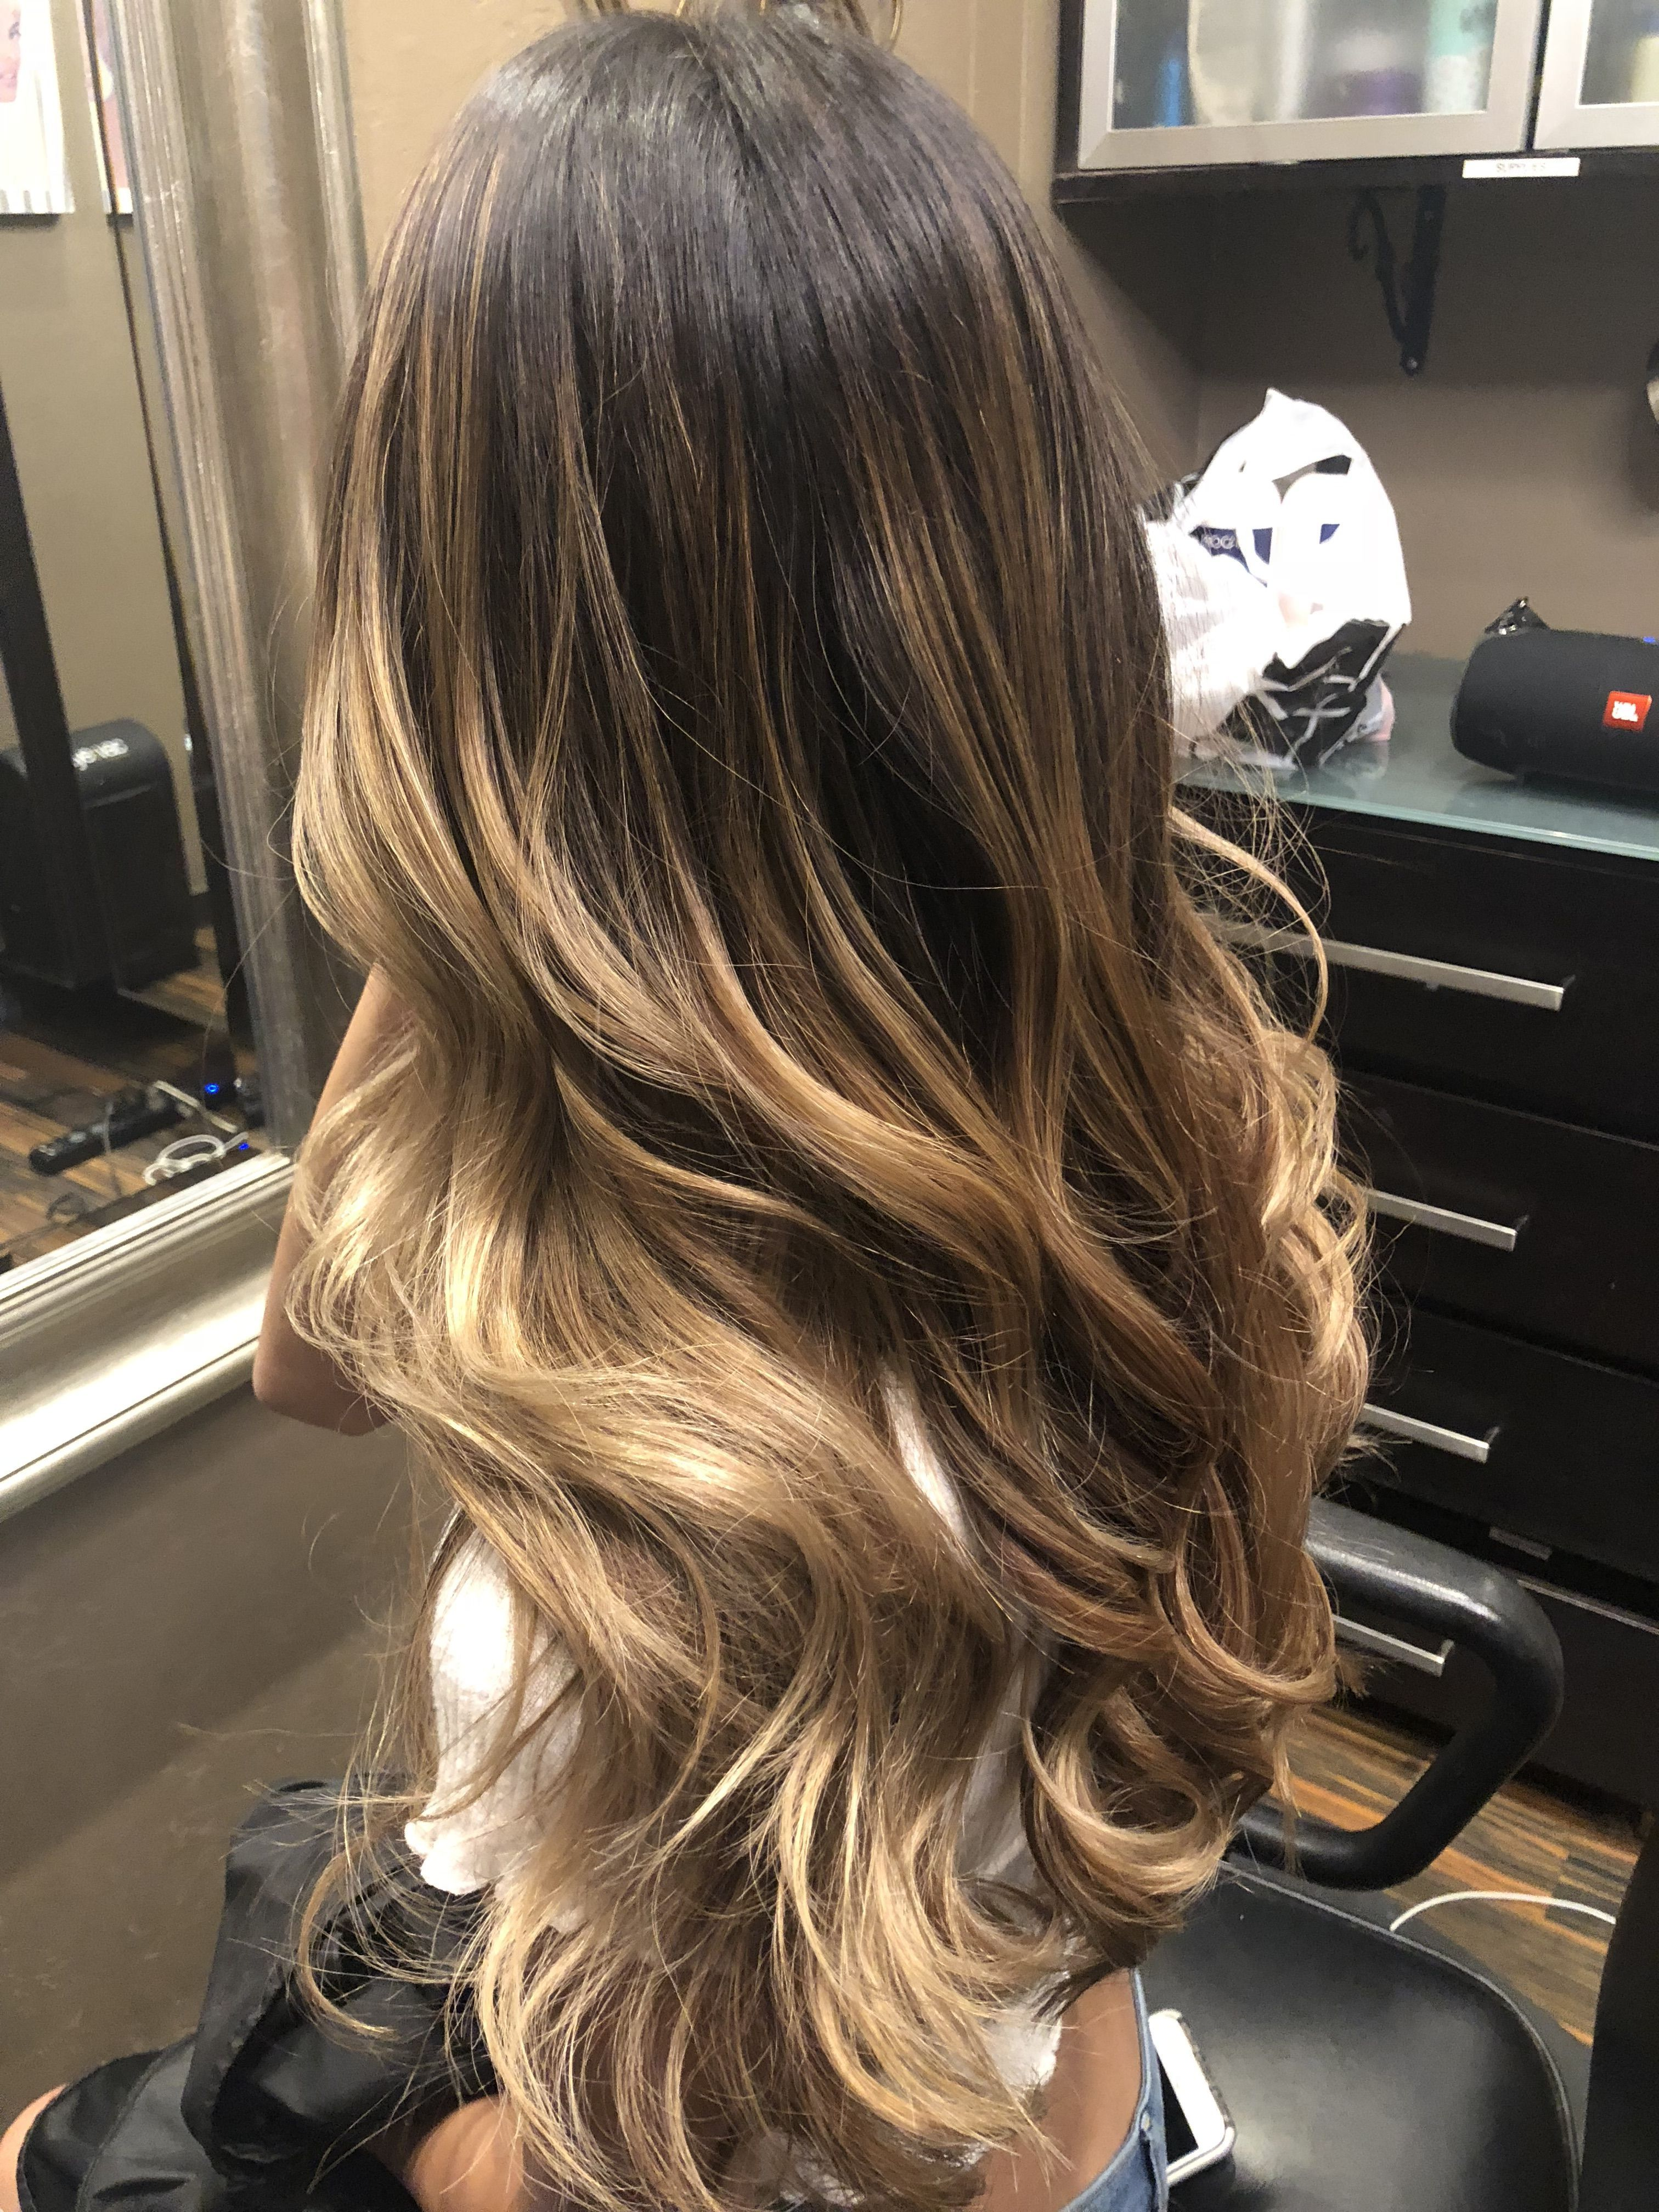 20 Gorgeous Blonde Hair Color Trends For Fall 2019 Easy Hairstyles Hair Styles Blonde Hair Color Balayage Hair